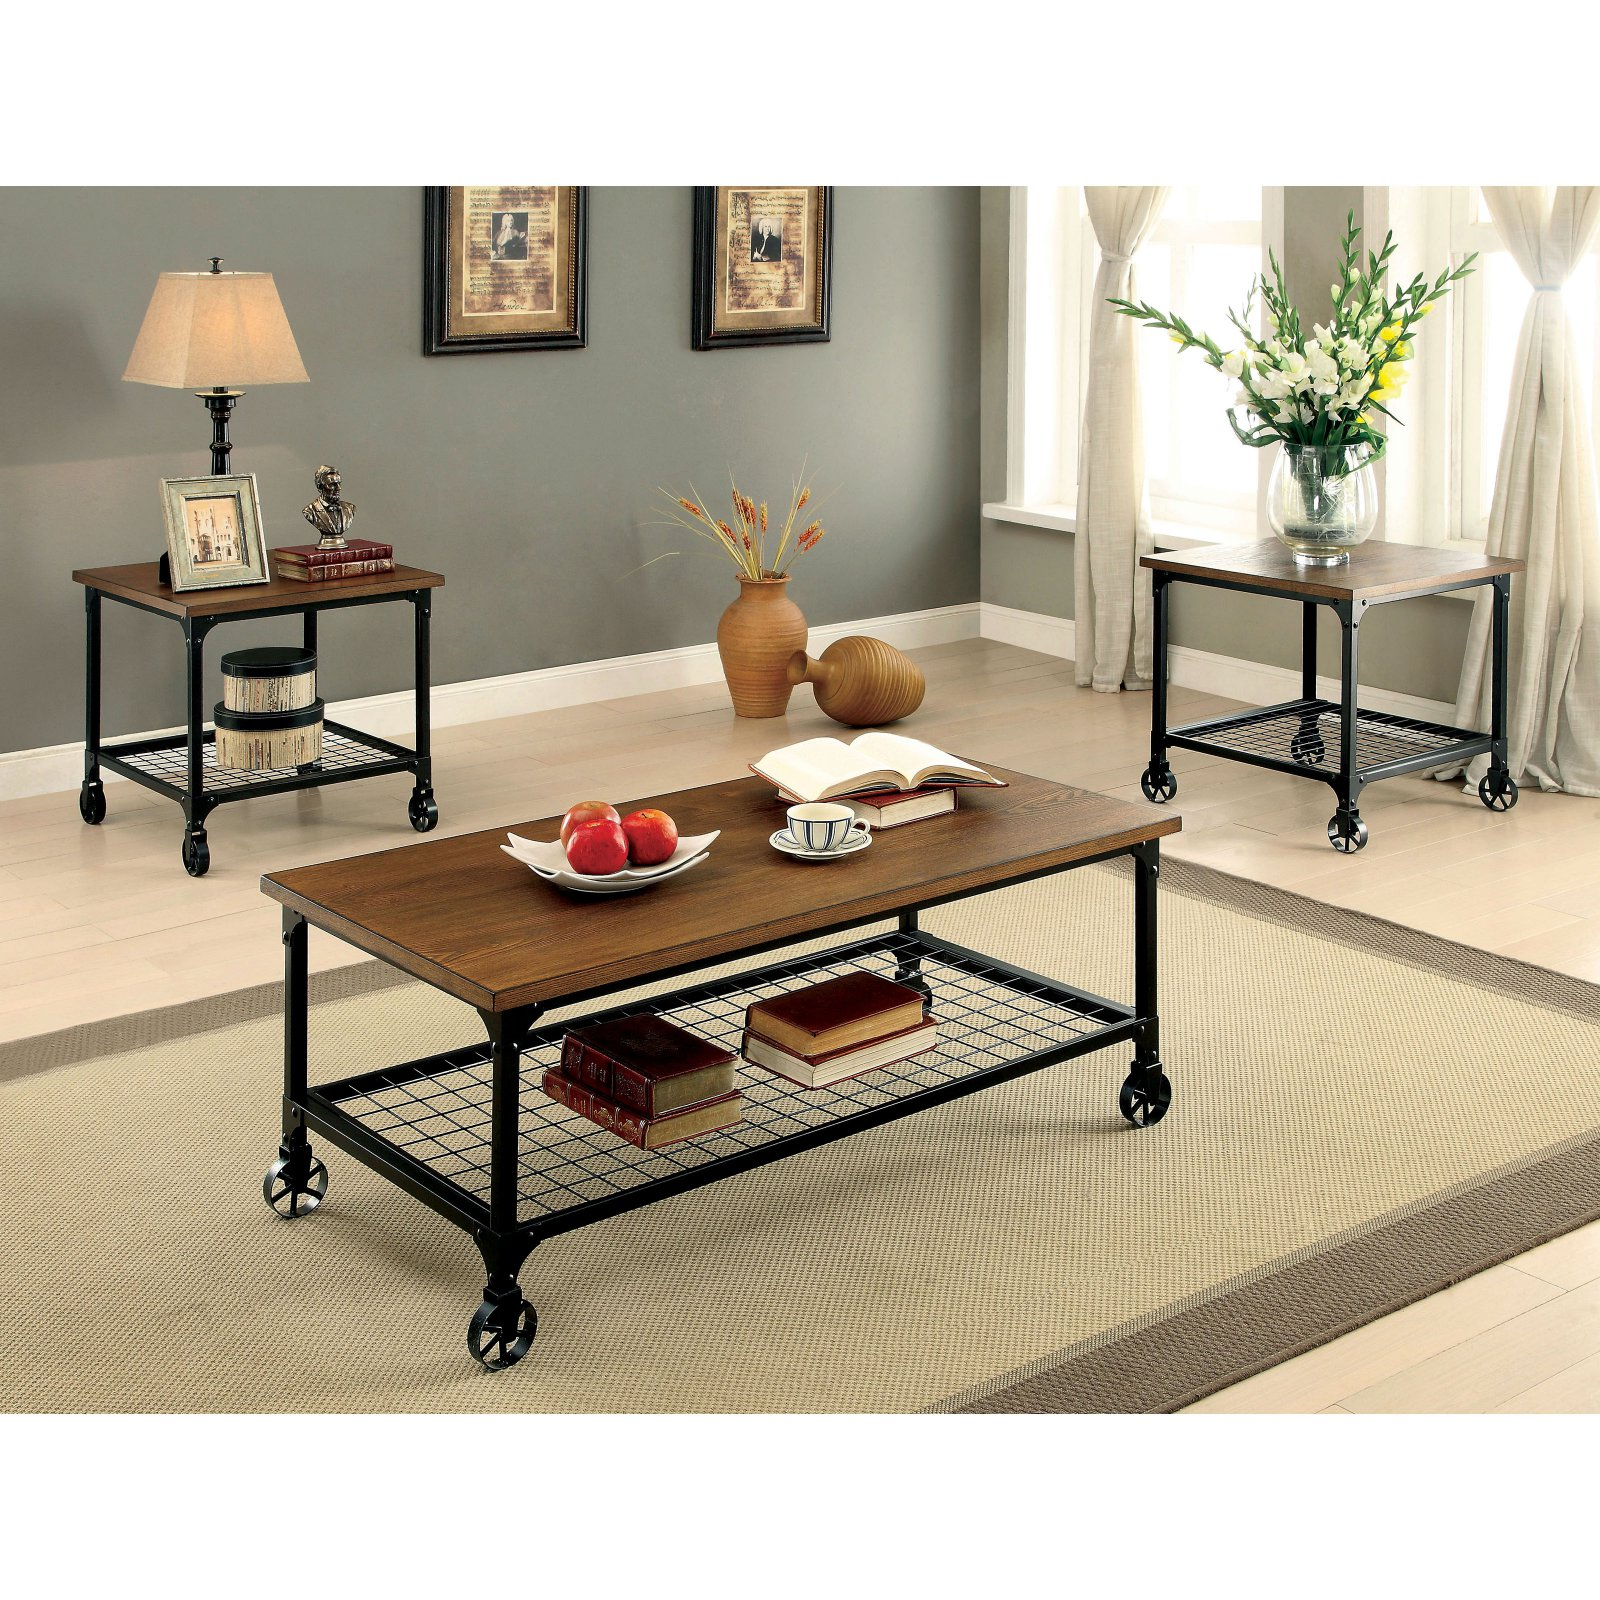 Furniture Of America Carnegie 3 Piece Coffee Table Set In 2020